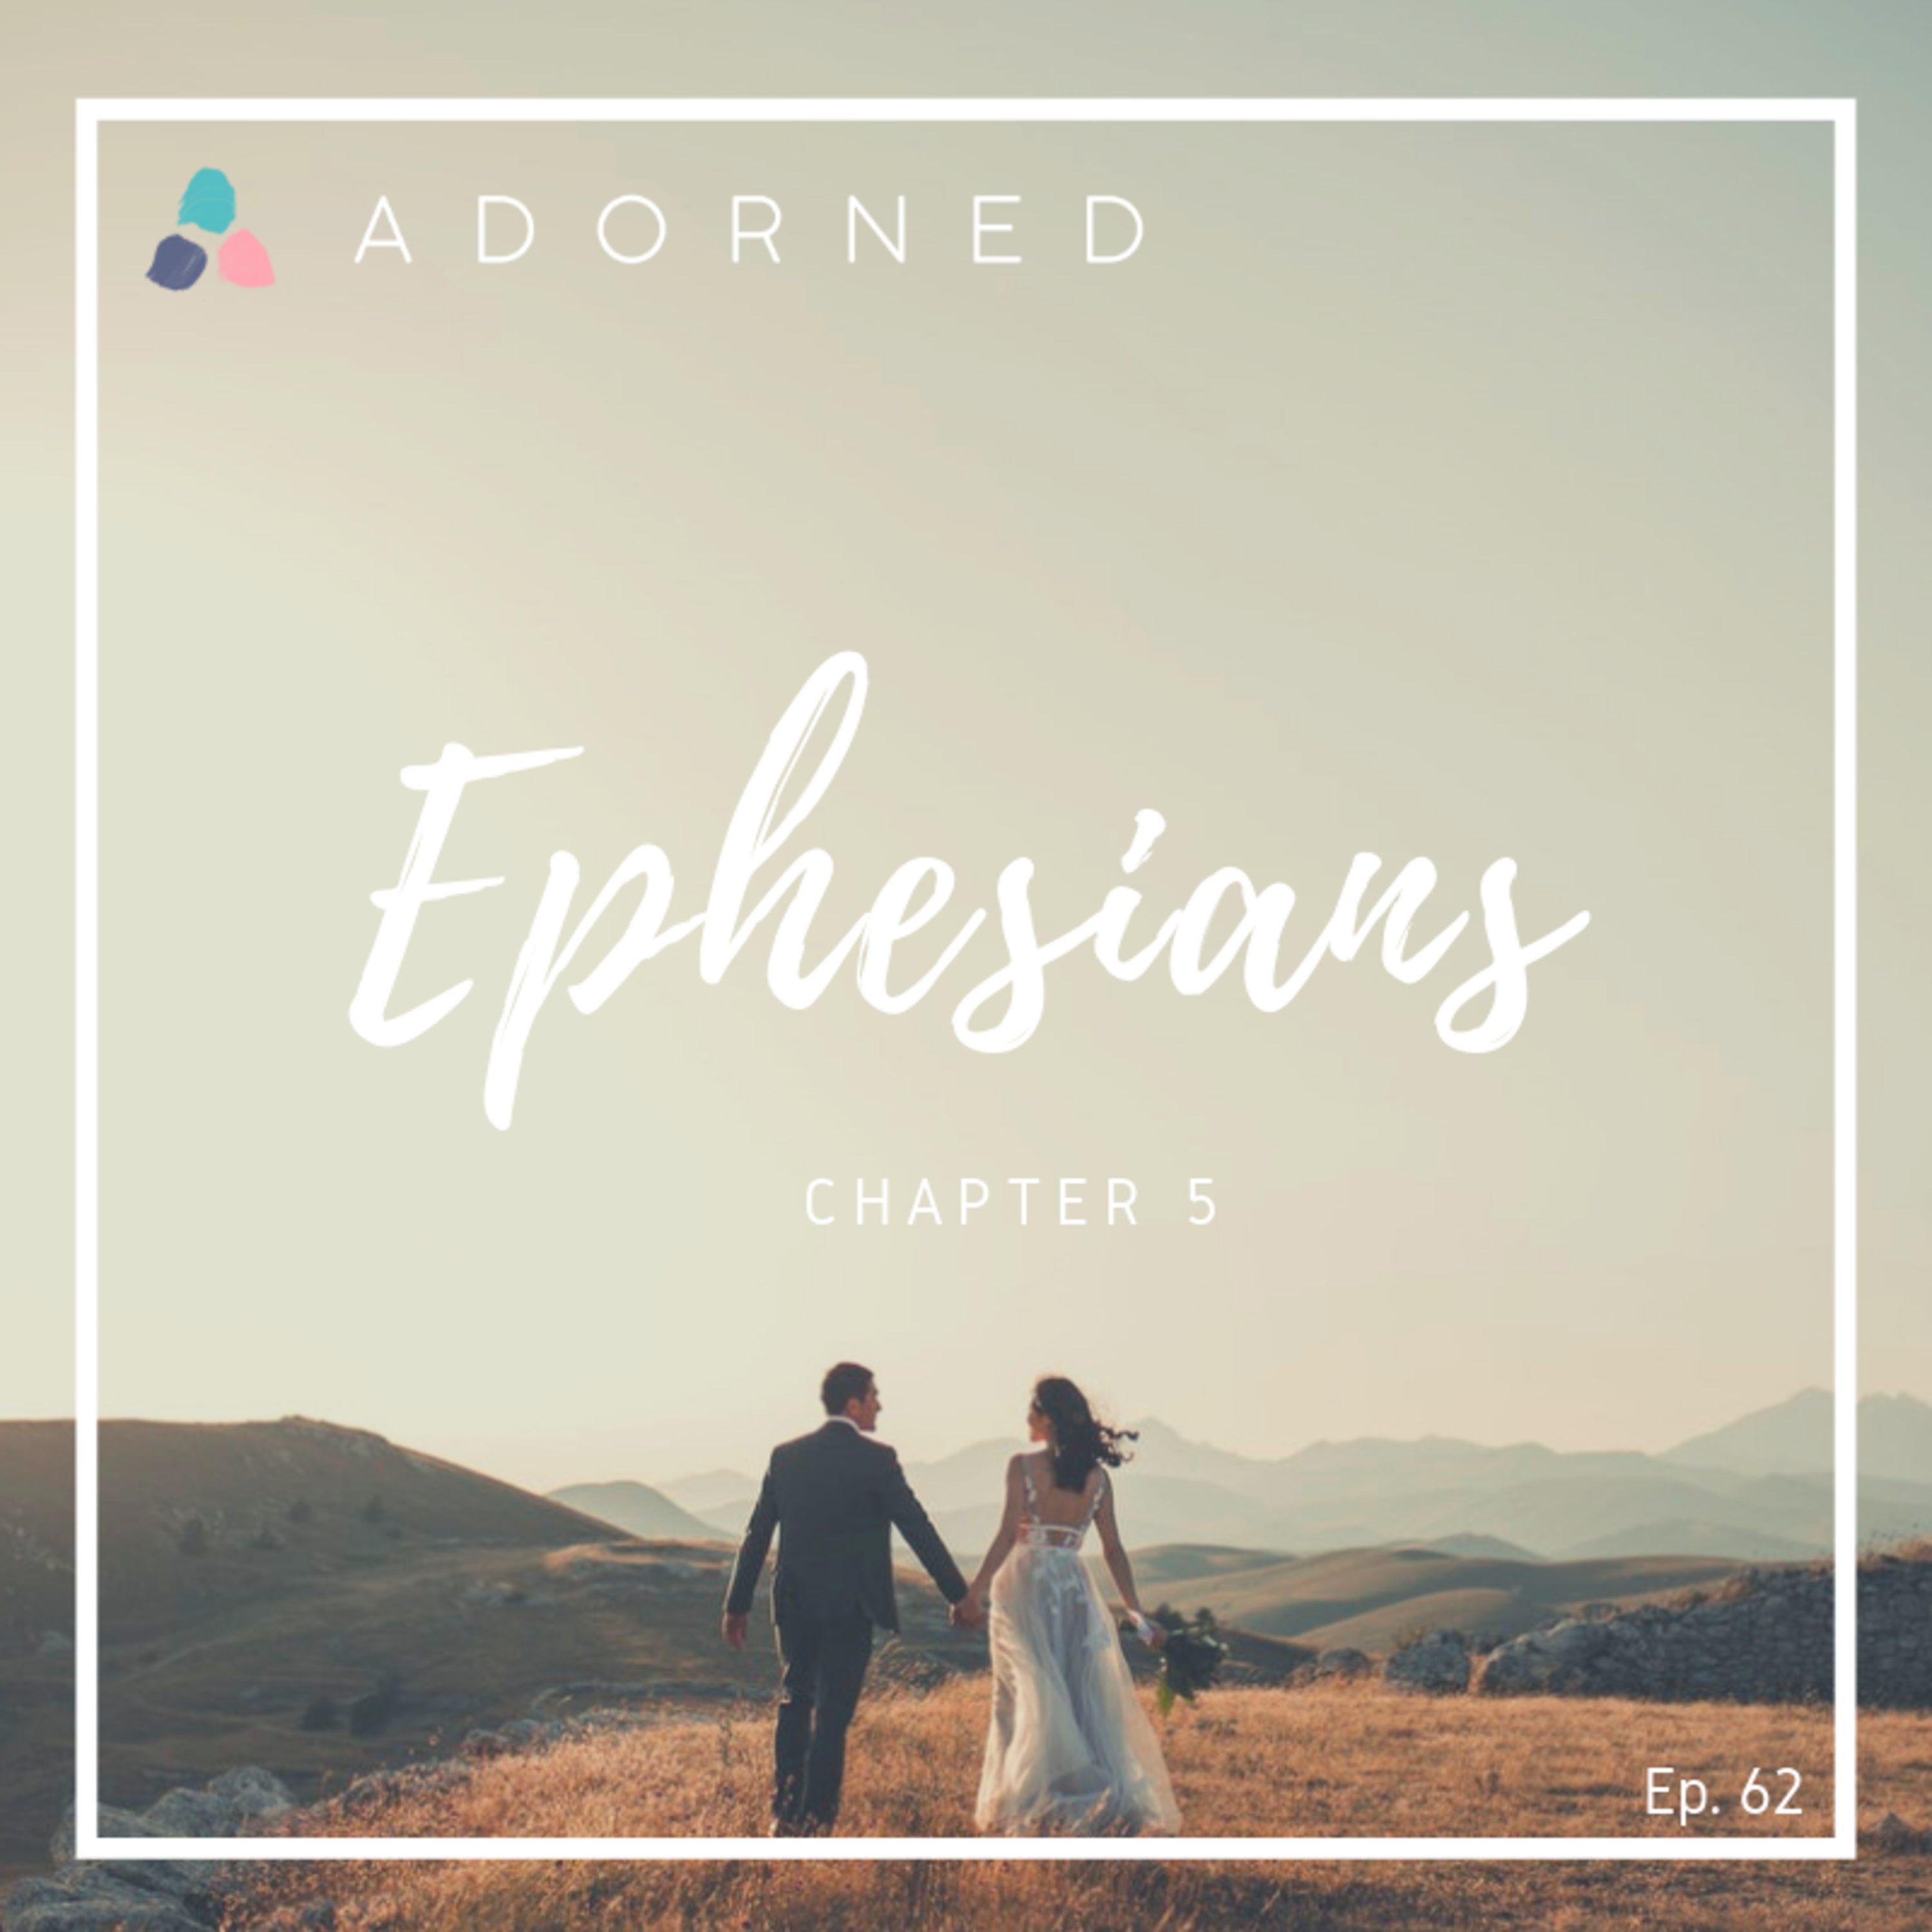 Ep. 62 - Ephesians - Chapter 5